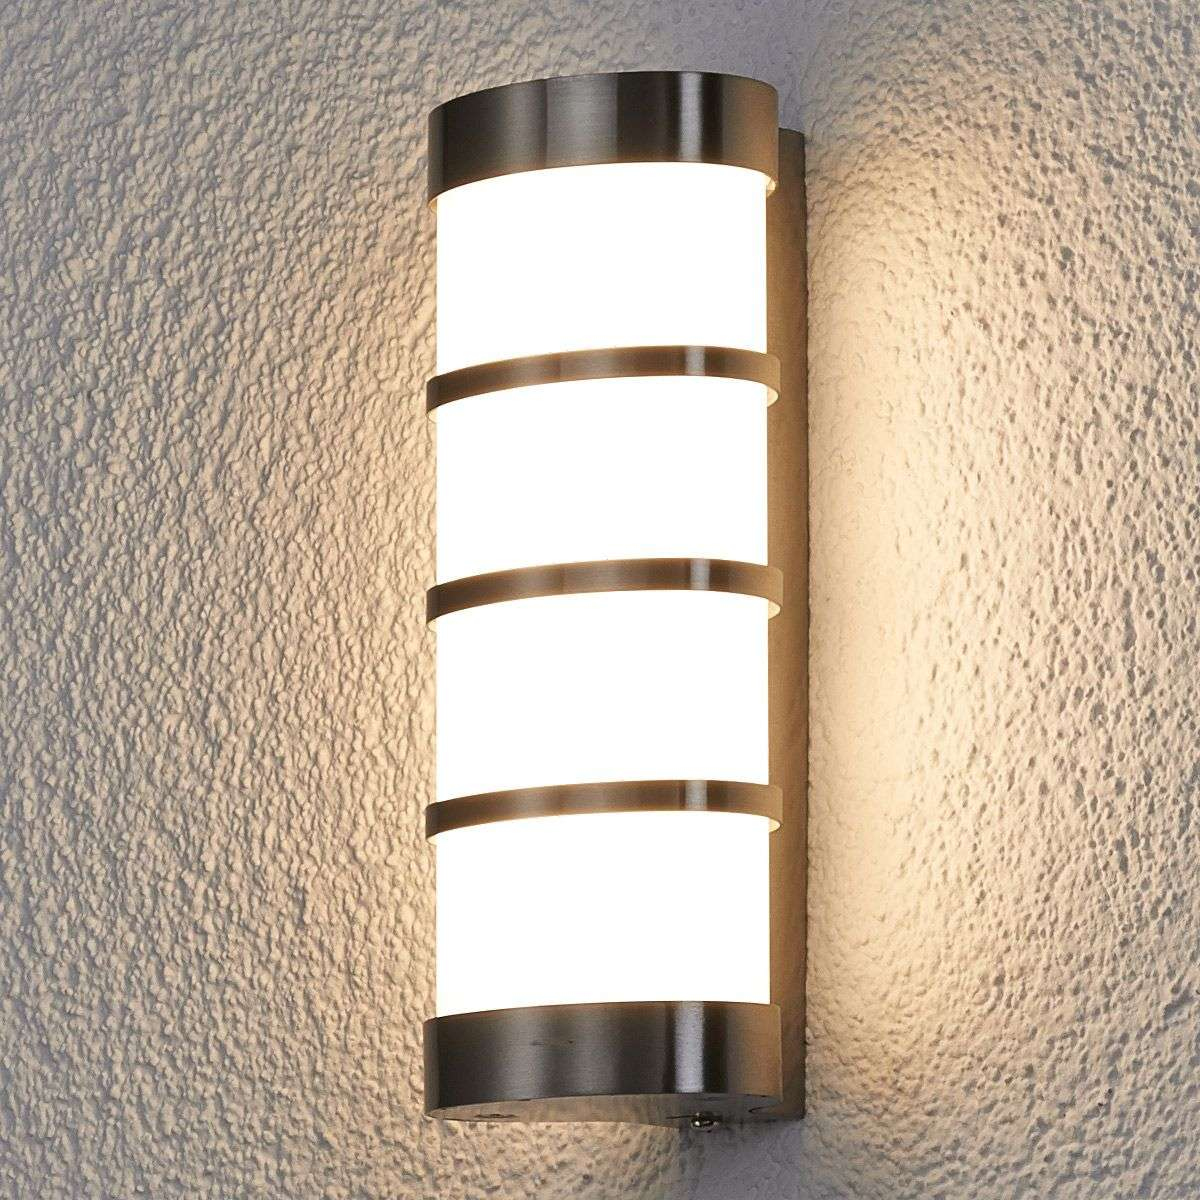 Leroy stainless led exterior wall lamp lights ie